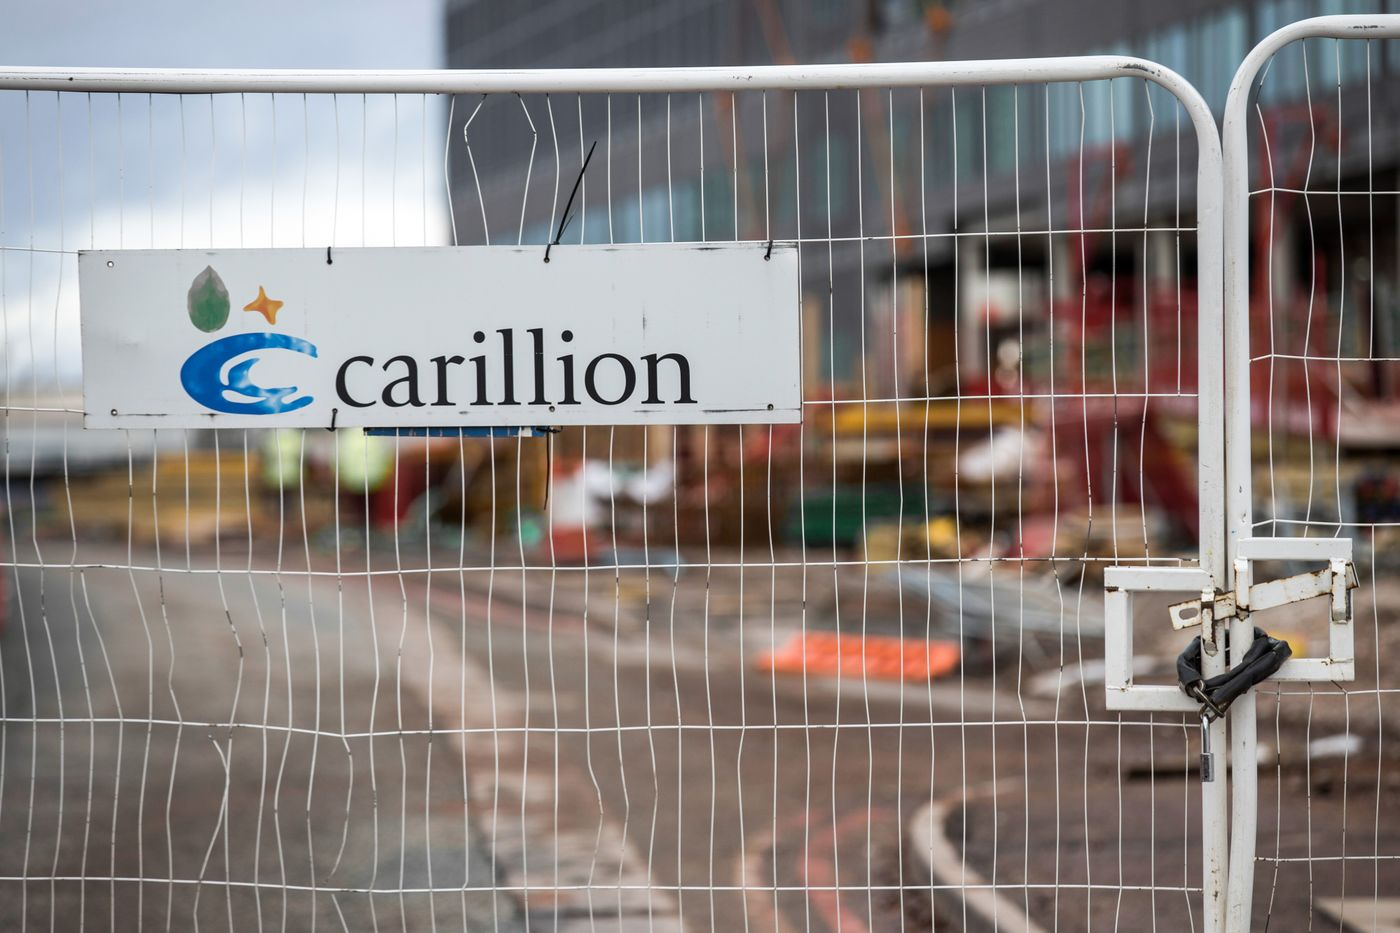 Carillion collapse prompts rules on U.K. corporate recklessness (bloomberg.com)